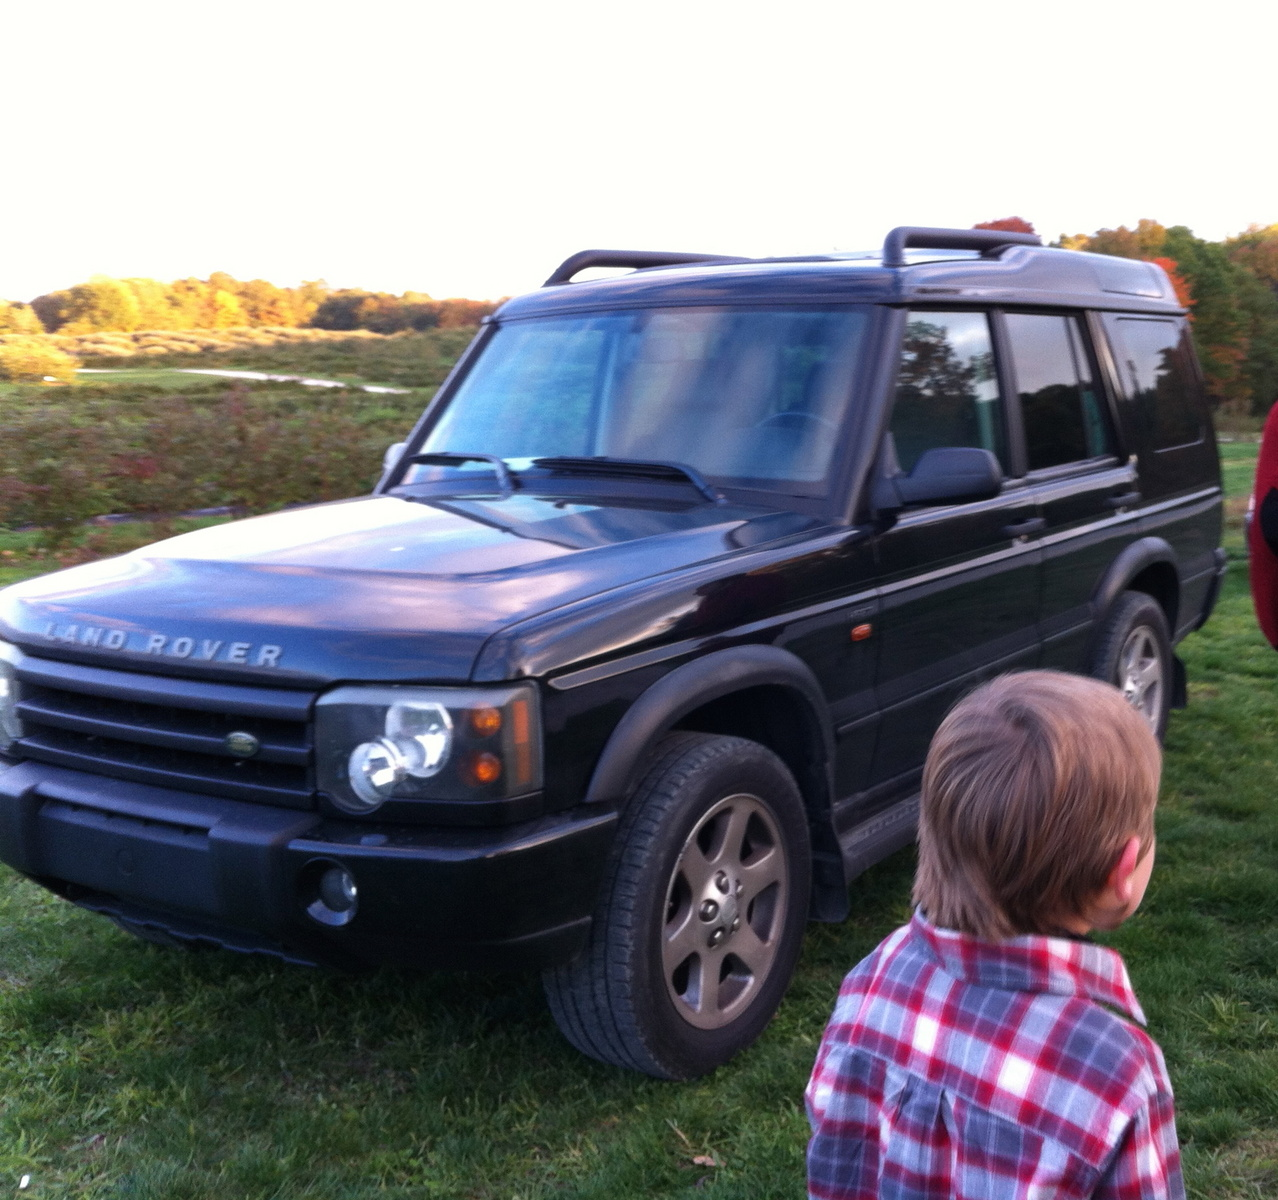 Used Land Rovers For Sale: 2004 Land Rover Discovery HSE Used Cars In Indianapolis, 46201